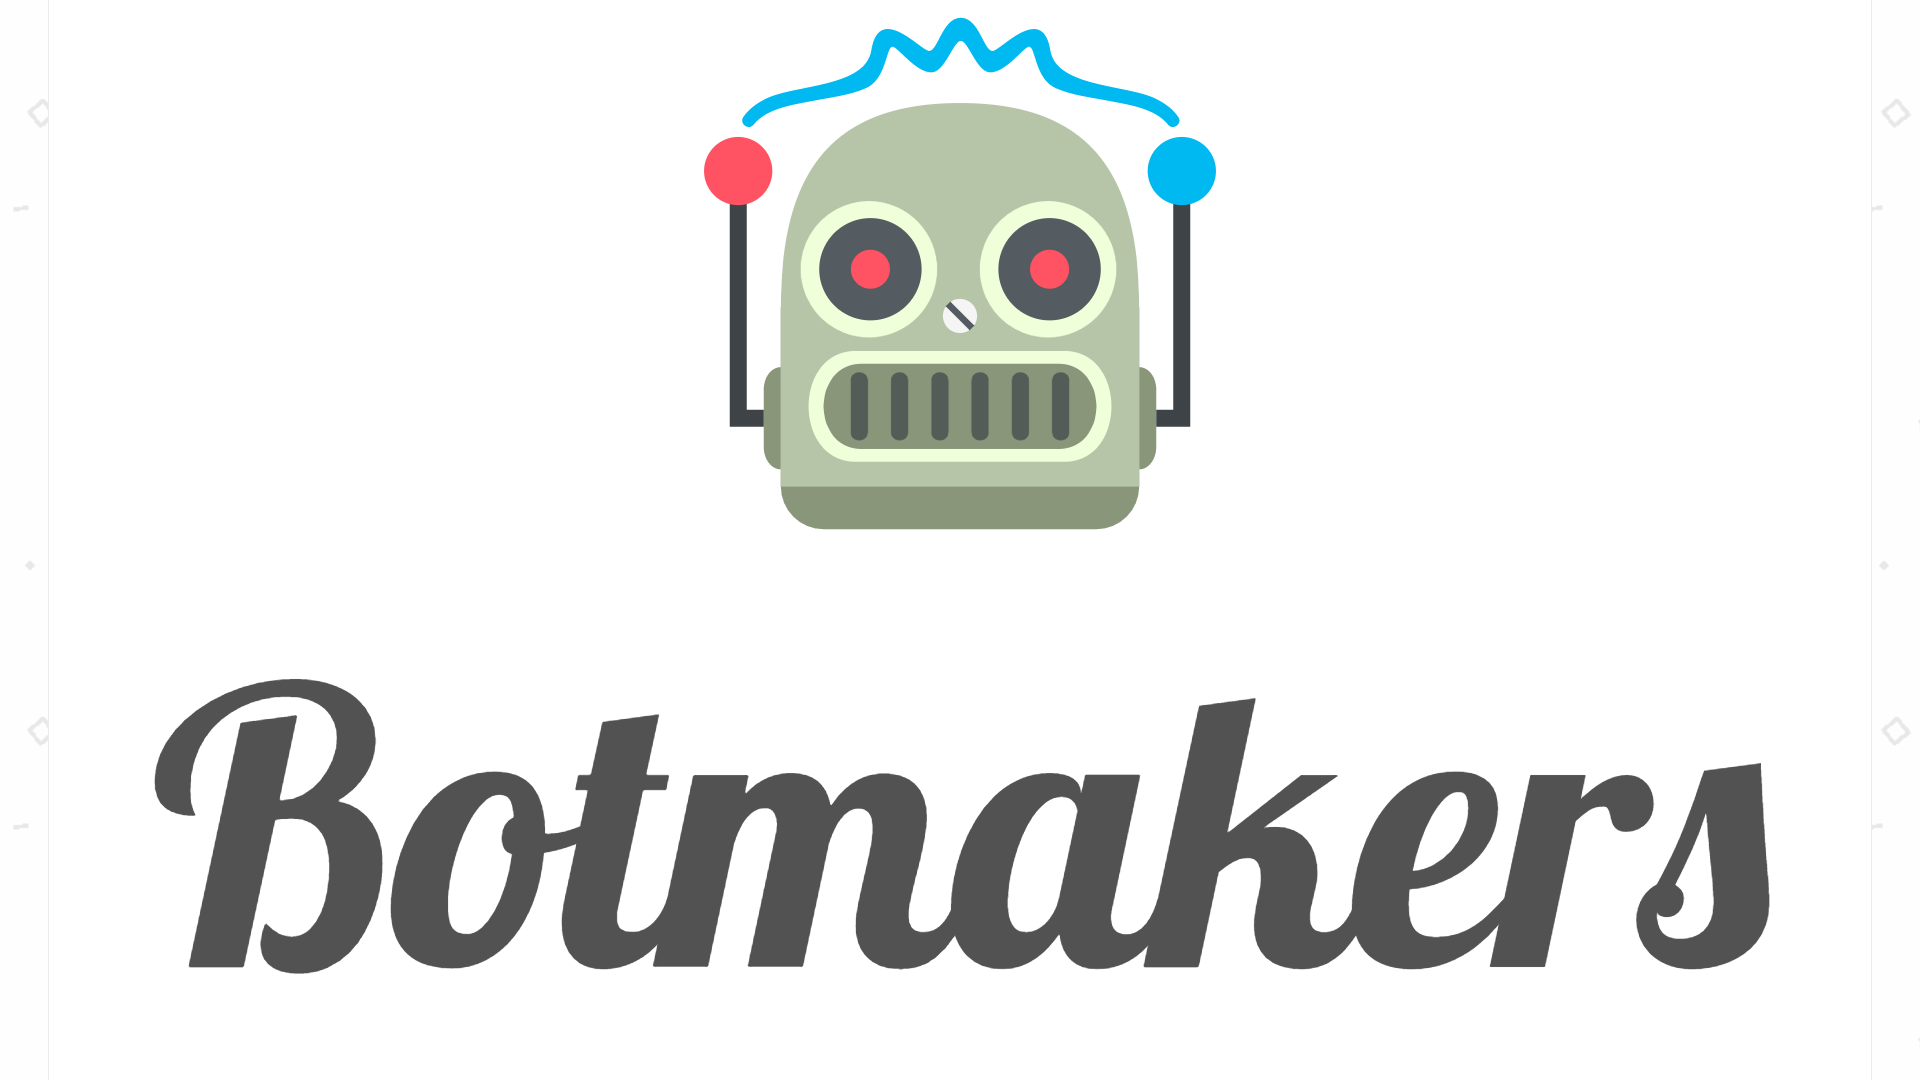 Join Botmakers!